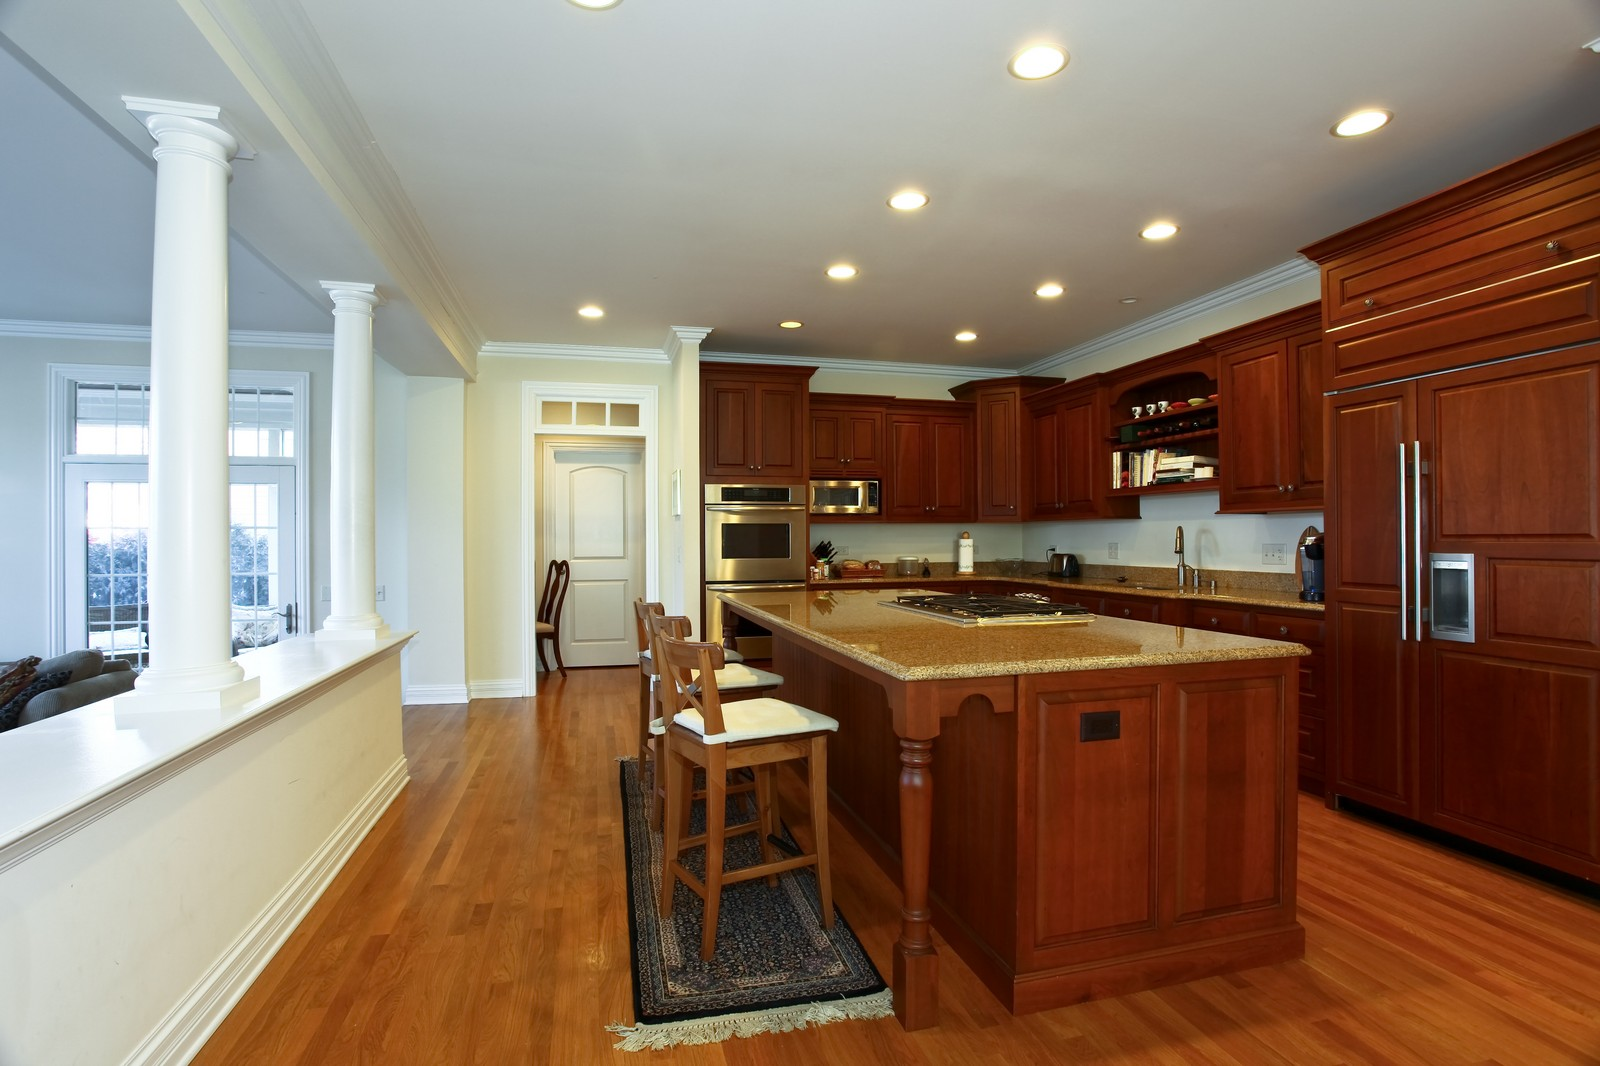 Real Estate Photography - 663 N Webster Street, Naperville, IL, 60563 - Kitchen